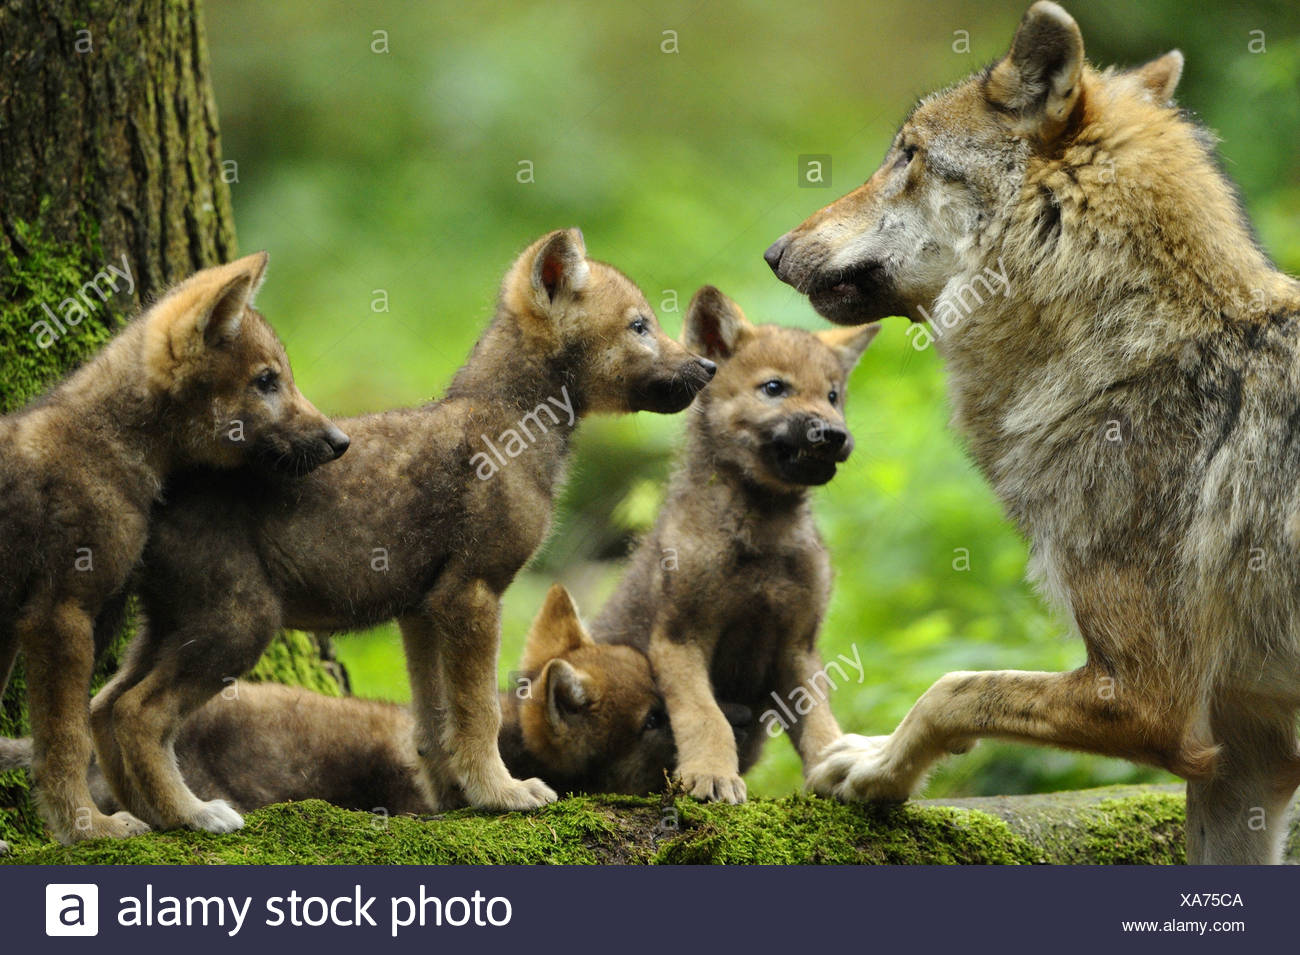 European gray wolf (Canis lupus lupus), she-wolf and wolf cubs, Germany, Bavaria, Bavarian Forest National Park - Stock Image